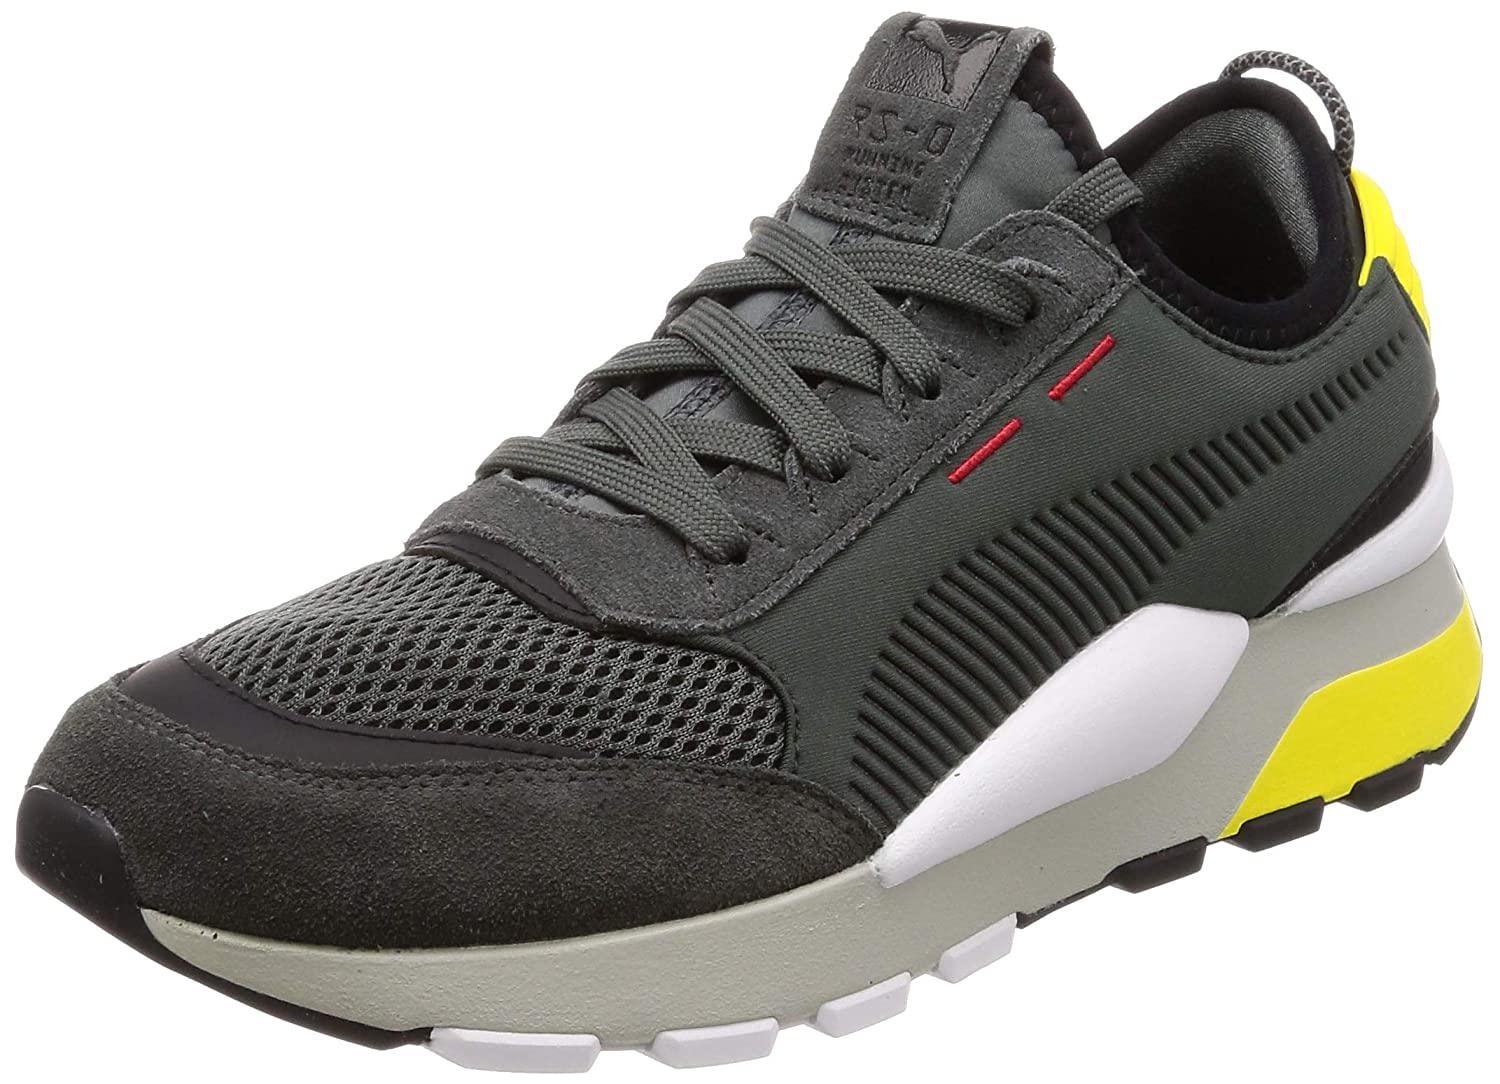 c655096bb91c Puma Unisex Adults  Rs-0 Winter Inj Toys Low-Top Sneakers  Amazon.co.uk   Shoes   Bags